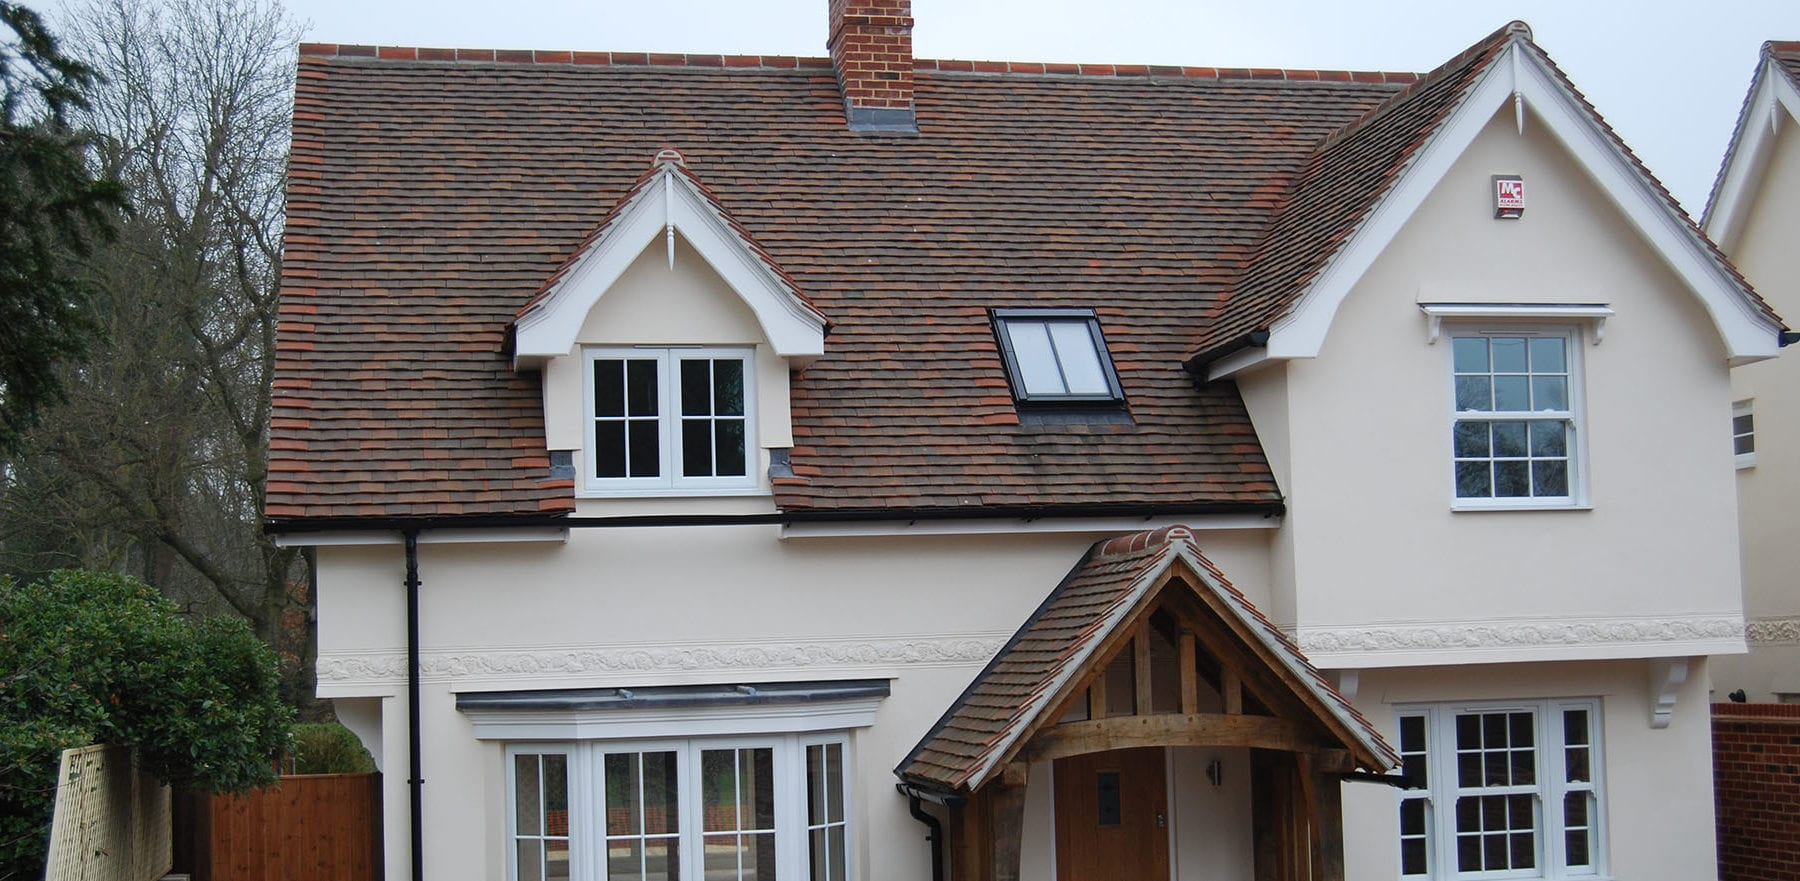 Lifestiles - Handcrafted Autumn Clay Roof Tiles - Bergholt, England 4